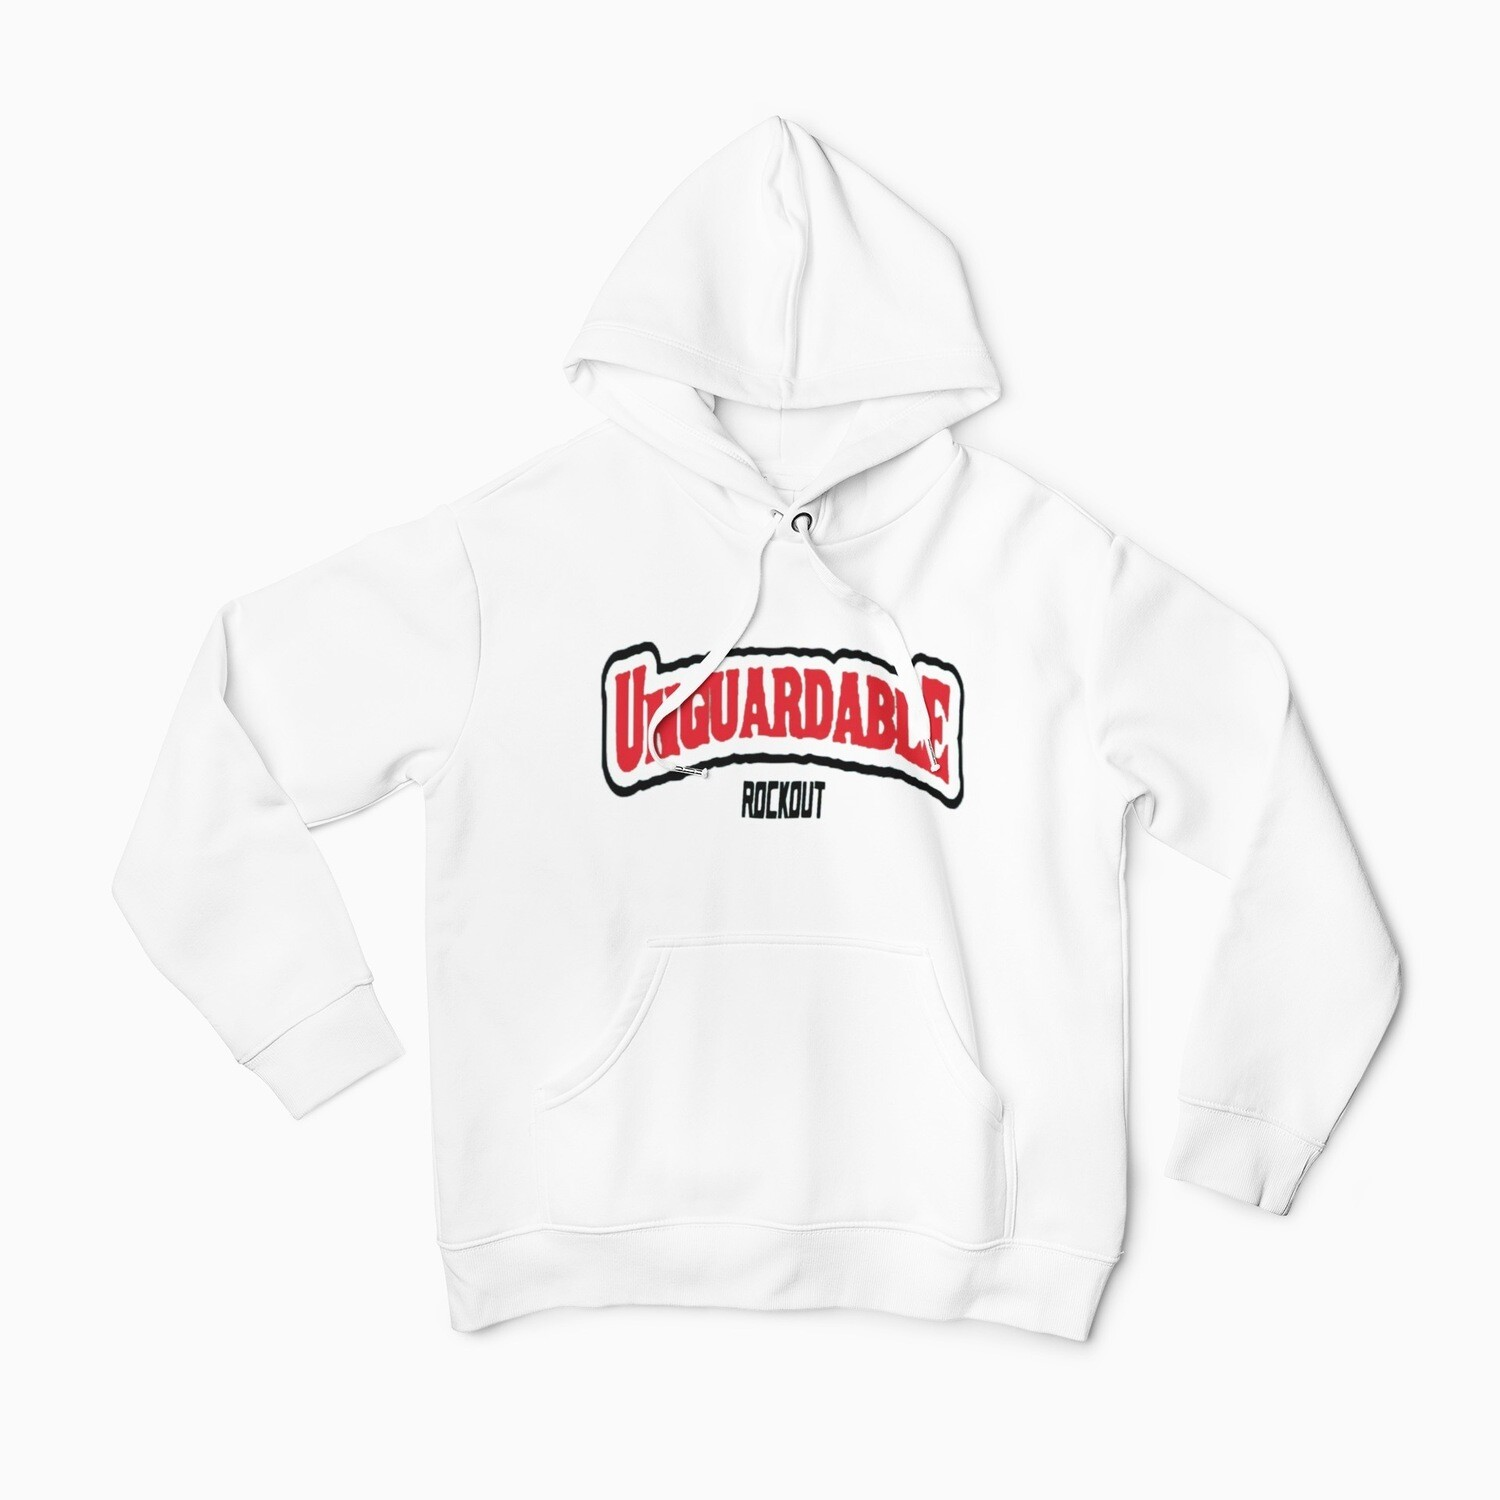 Unguardable Hoodie